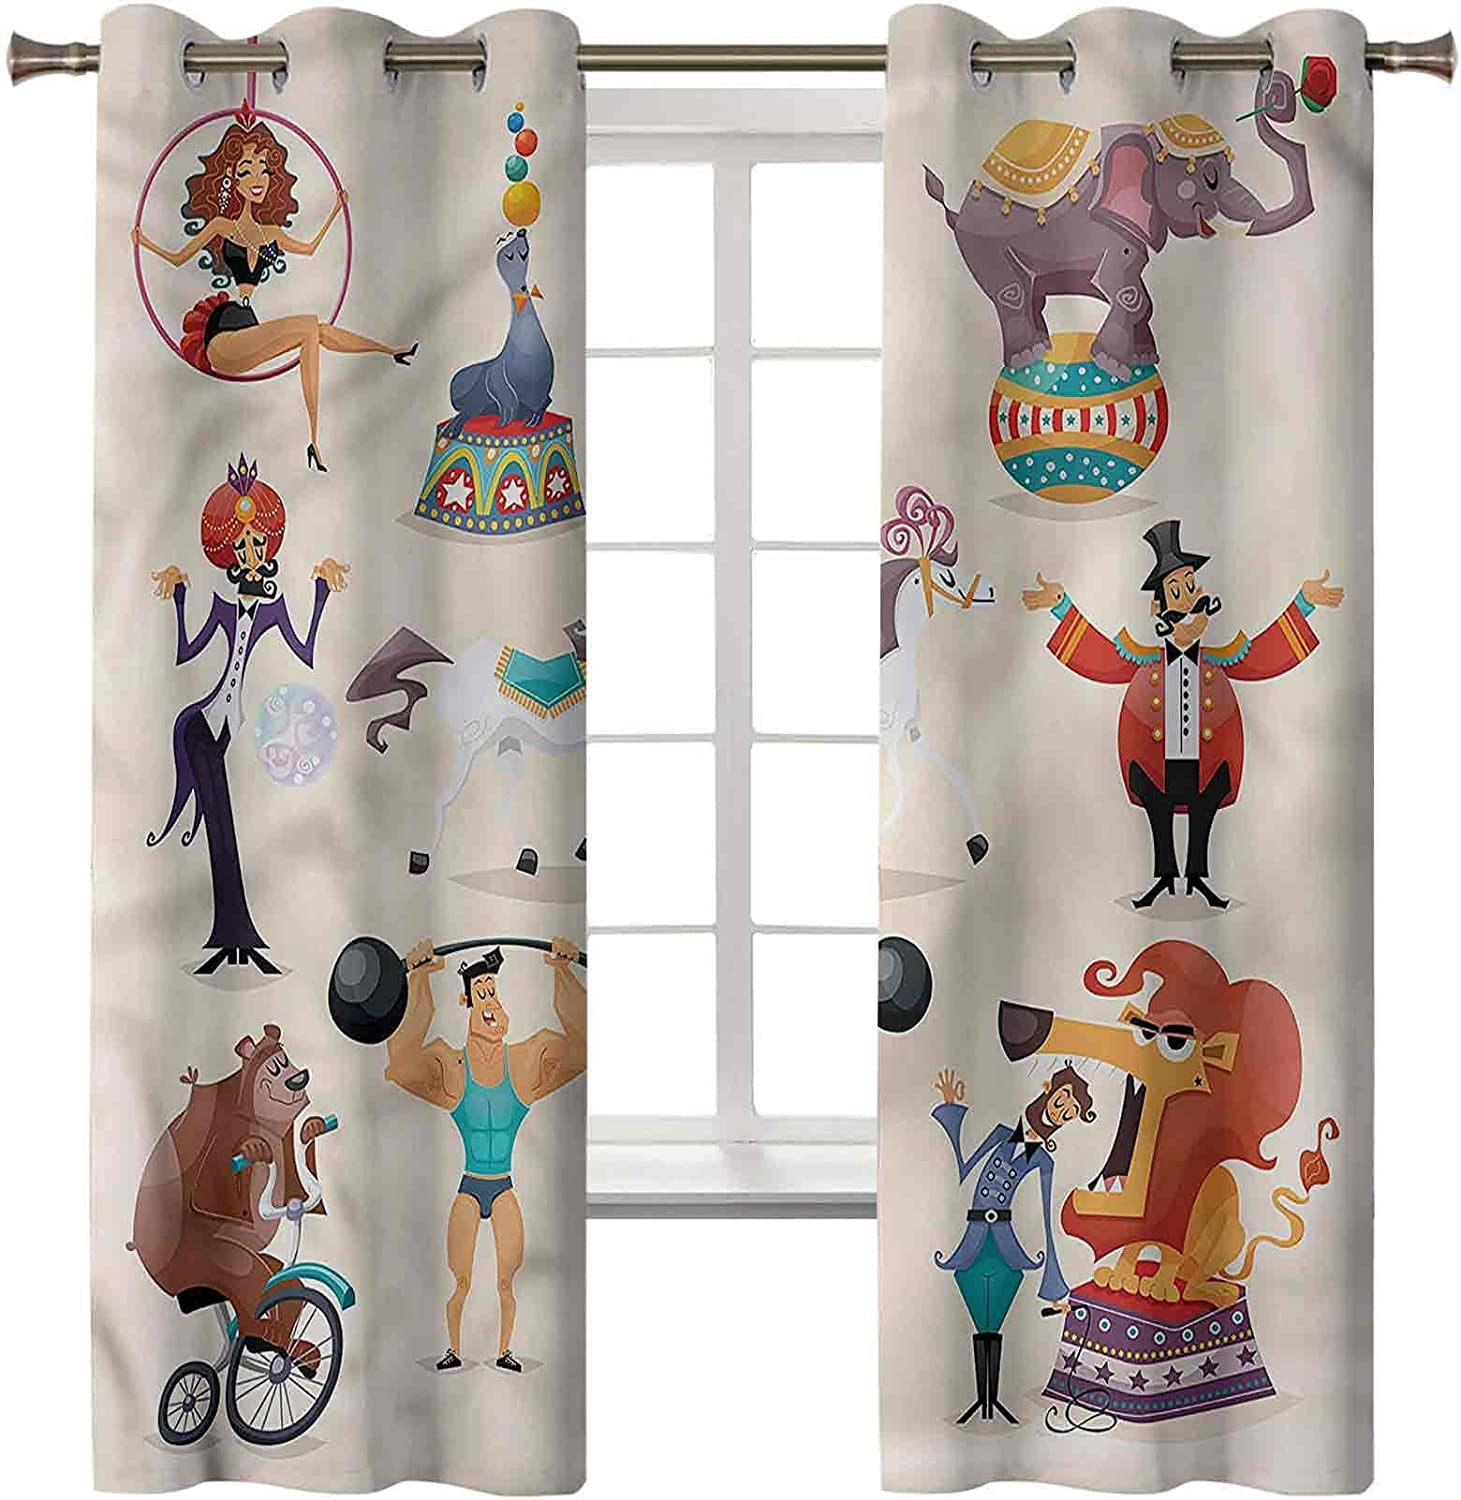 Circus Sound Proof Curtains Set of 2 Direct sale manufacturer 84 Excellent 42 Elegan x Inch Panels